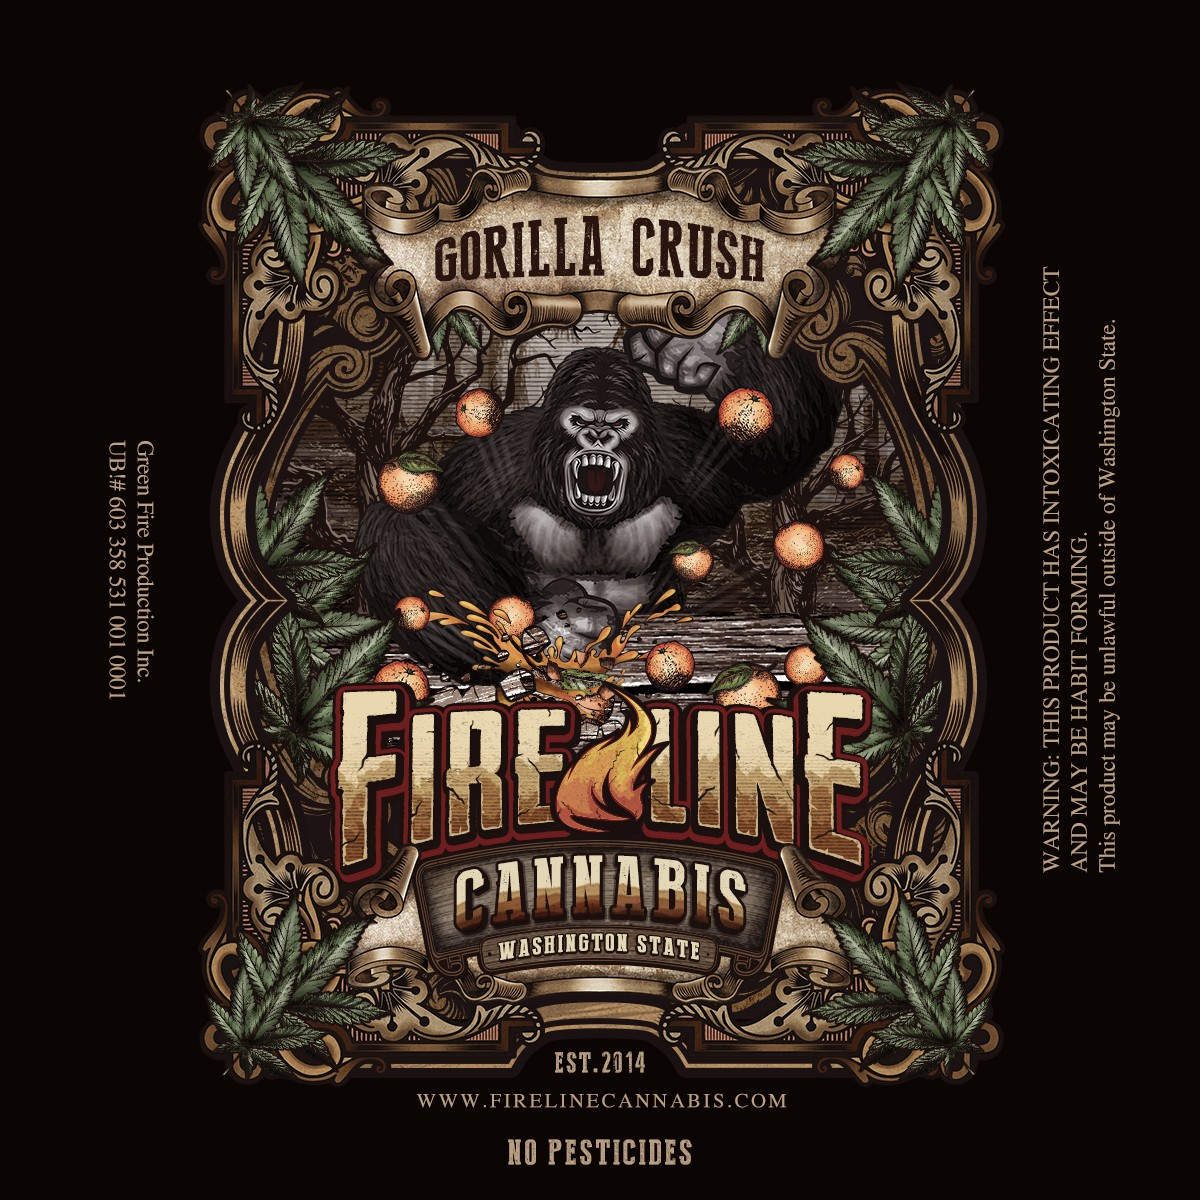 New package Labels for #1 Cannabis Producer in Washington...Fireline Cannabis.